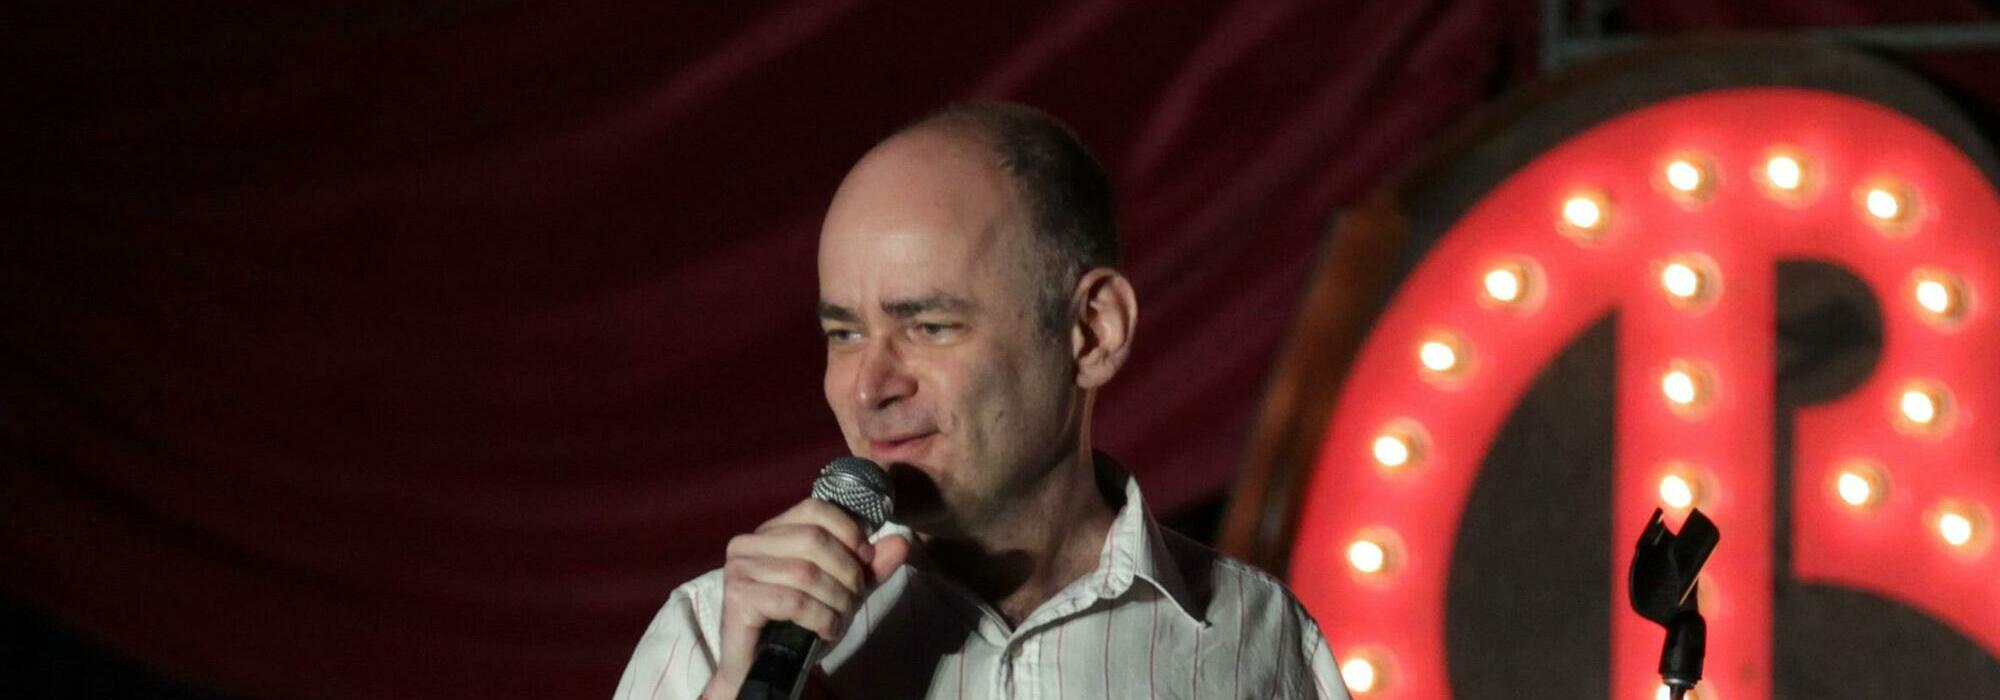 A Todd Barry live event